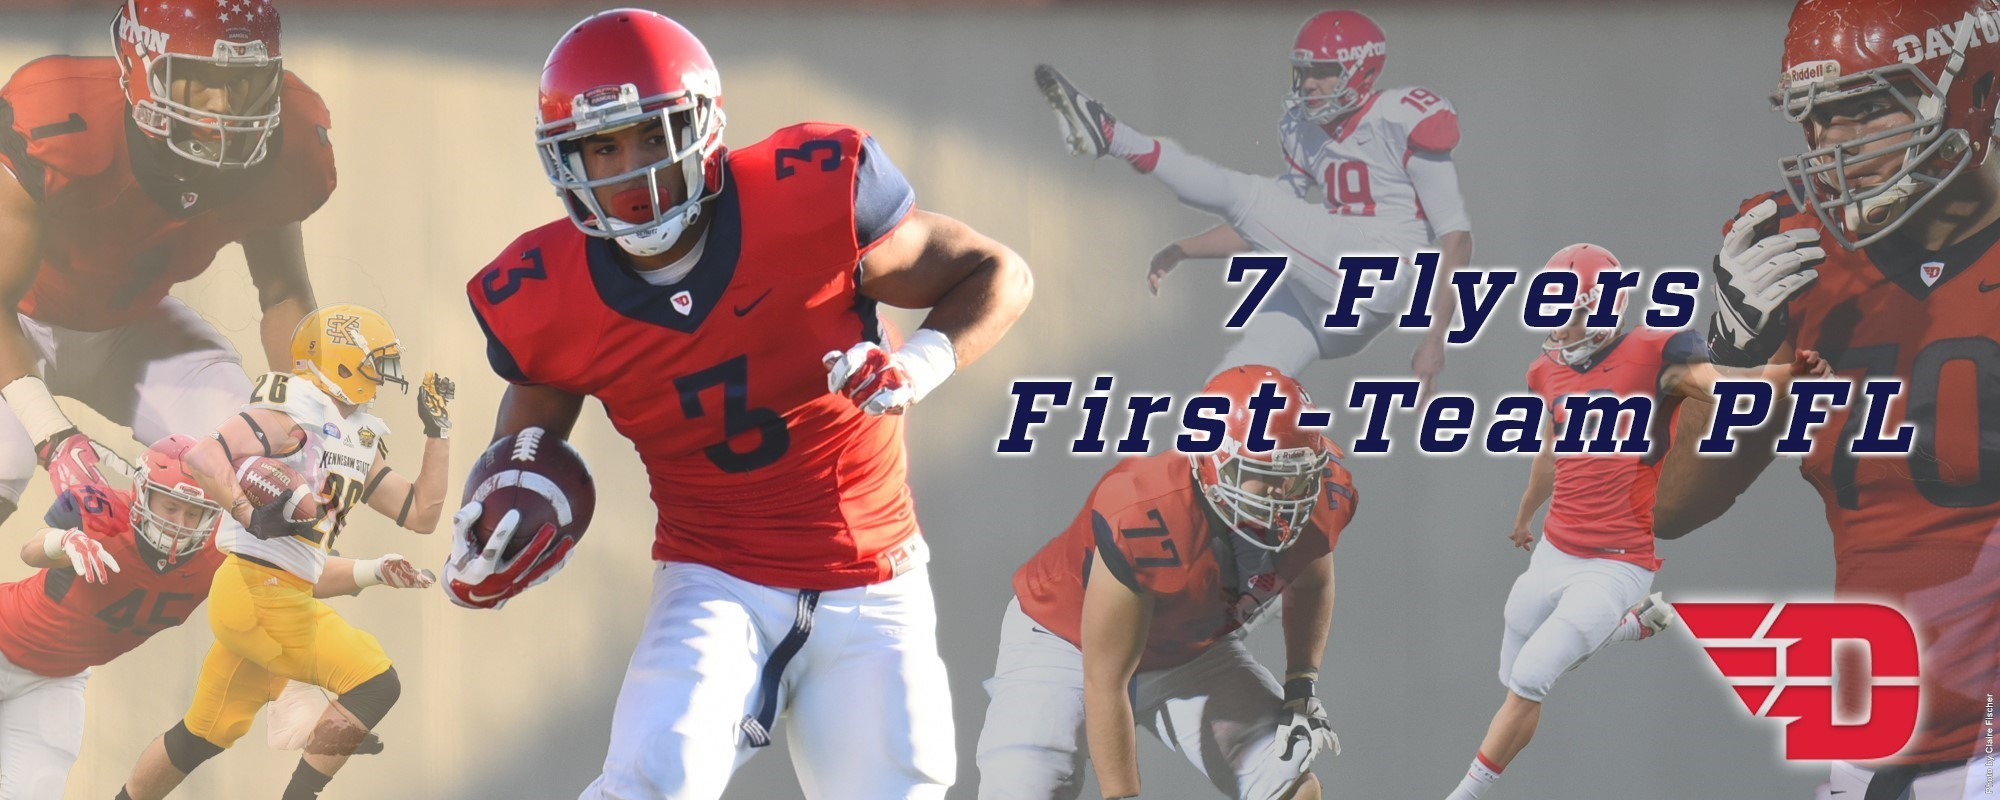 2015 First Team All-PFL